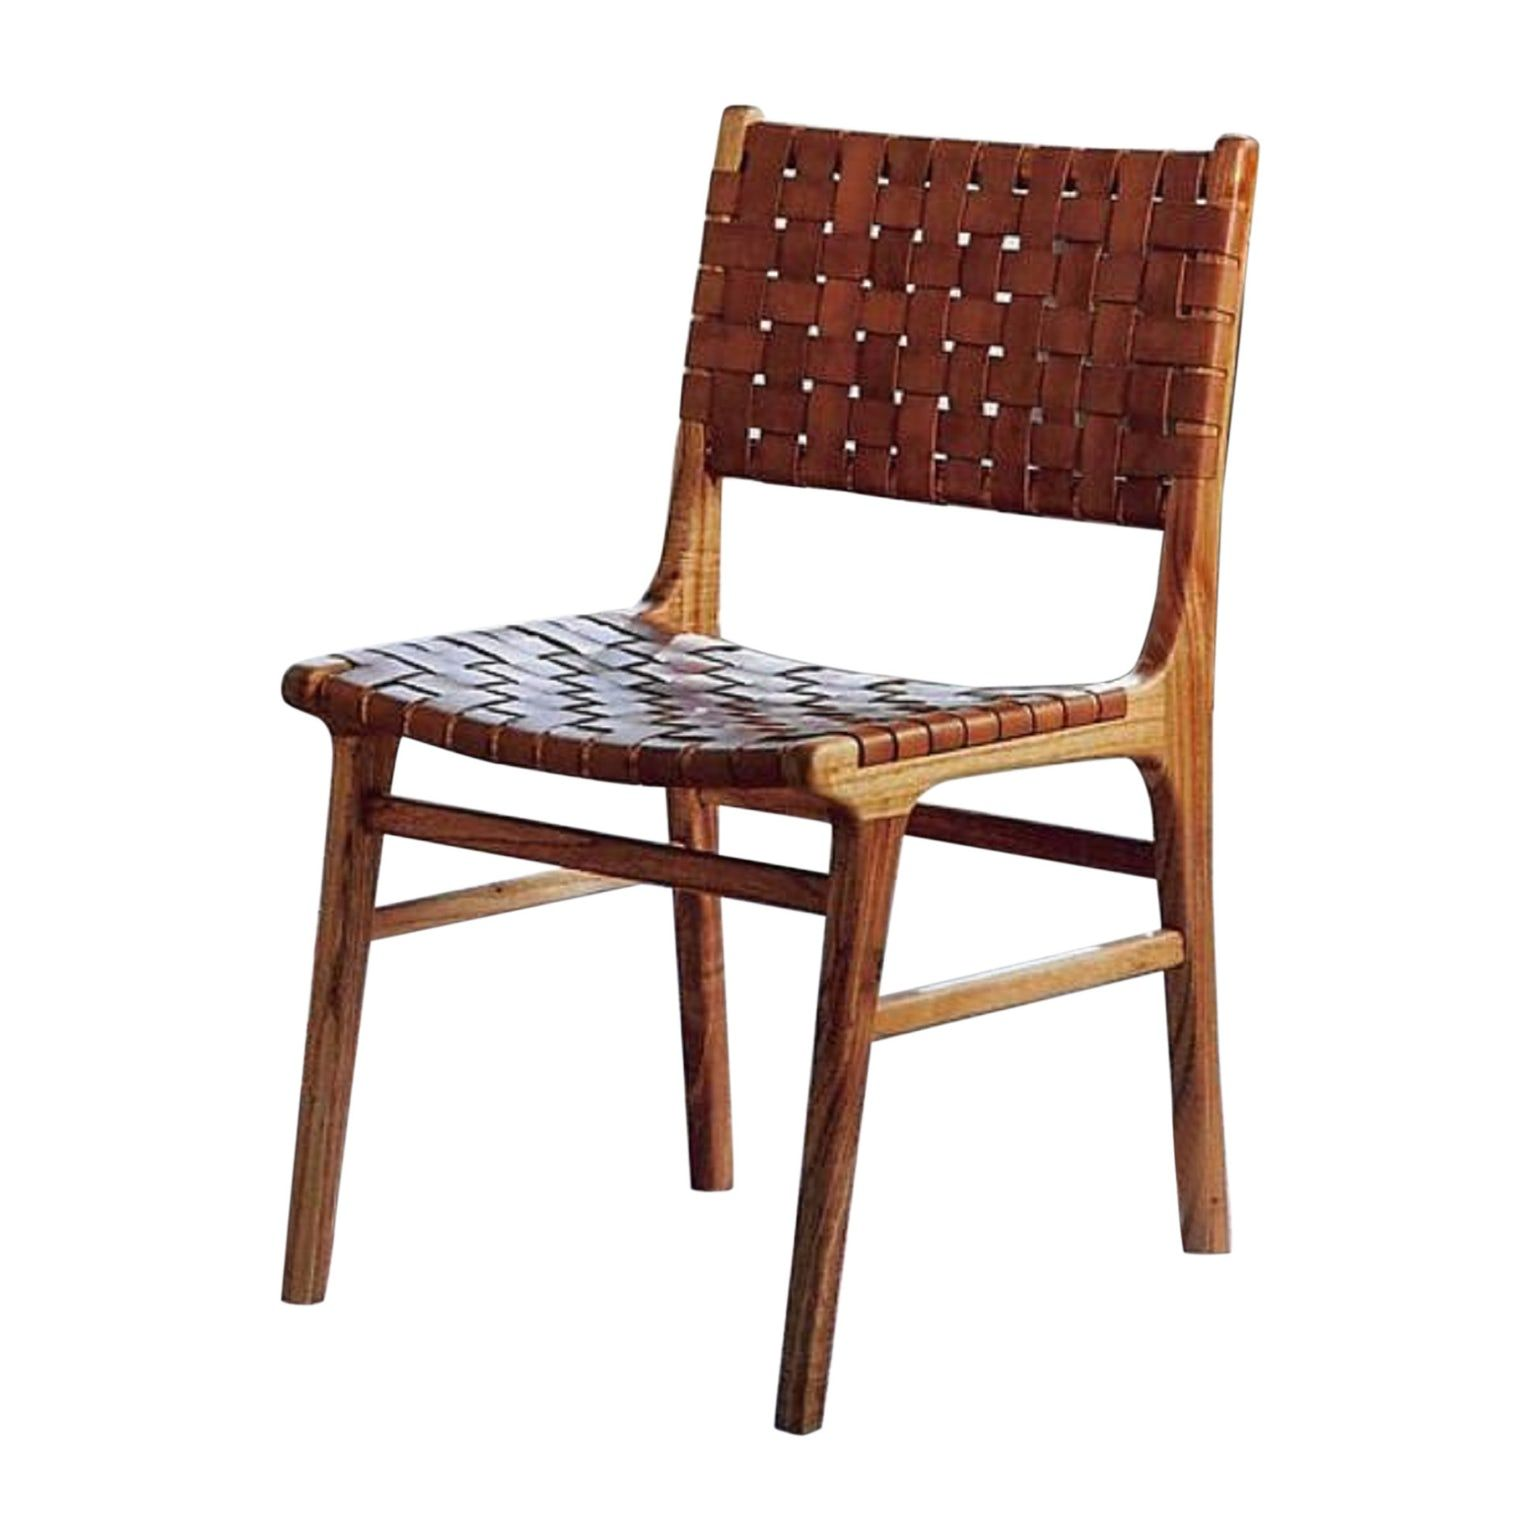 Leather Weaved Dining Chair Contemporary Industrial Midcentury Modern Organic Leath Dining Chairs Mid Century Leather Dining Chairs Leather Dining Chairs